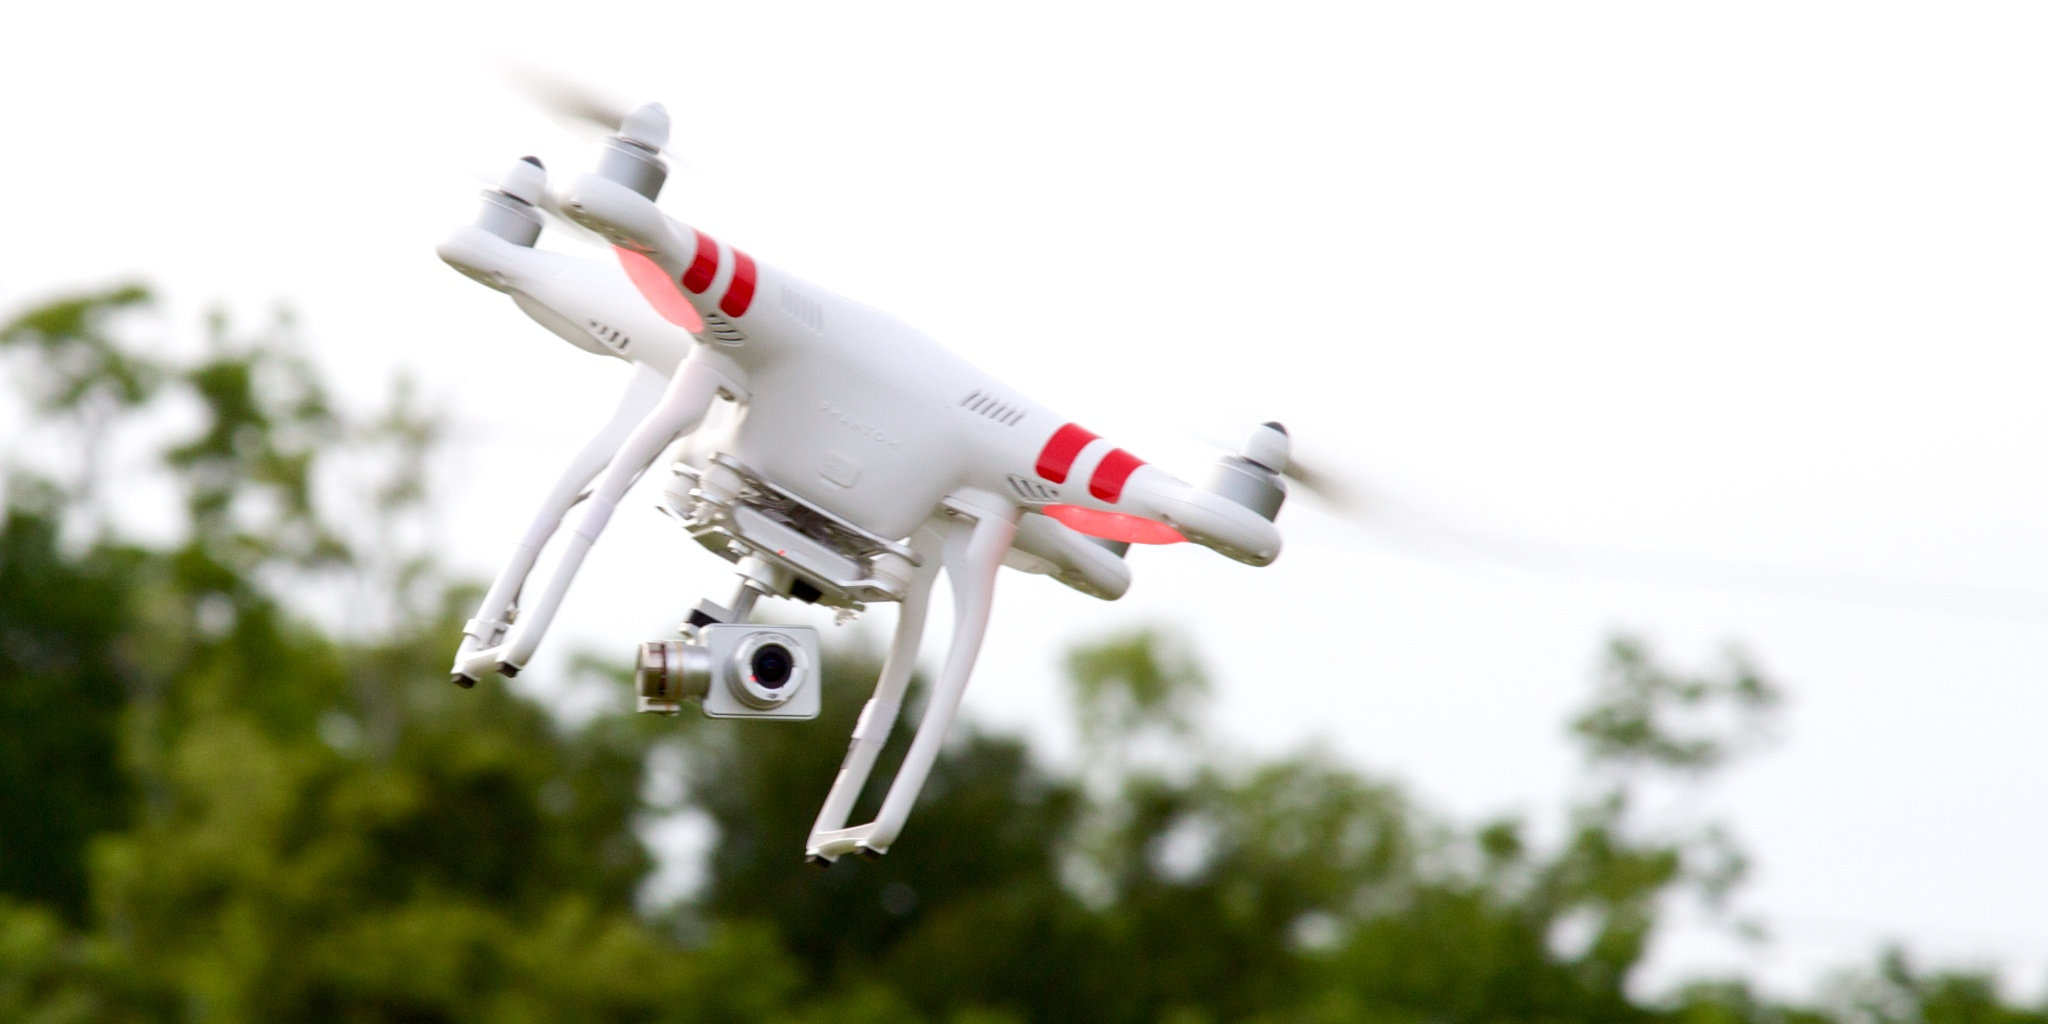 The DJI Phantom 2 Vision+ and its gimbal-stabilized camera, doin' its stabilization thing in flight.